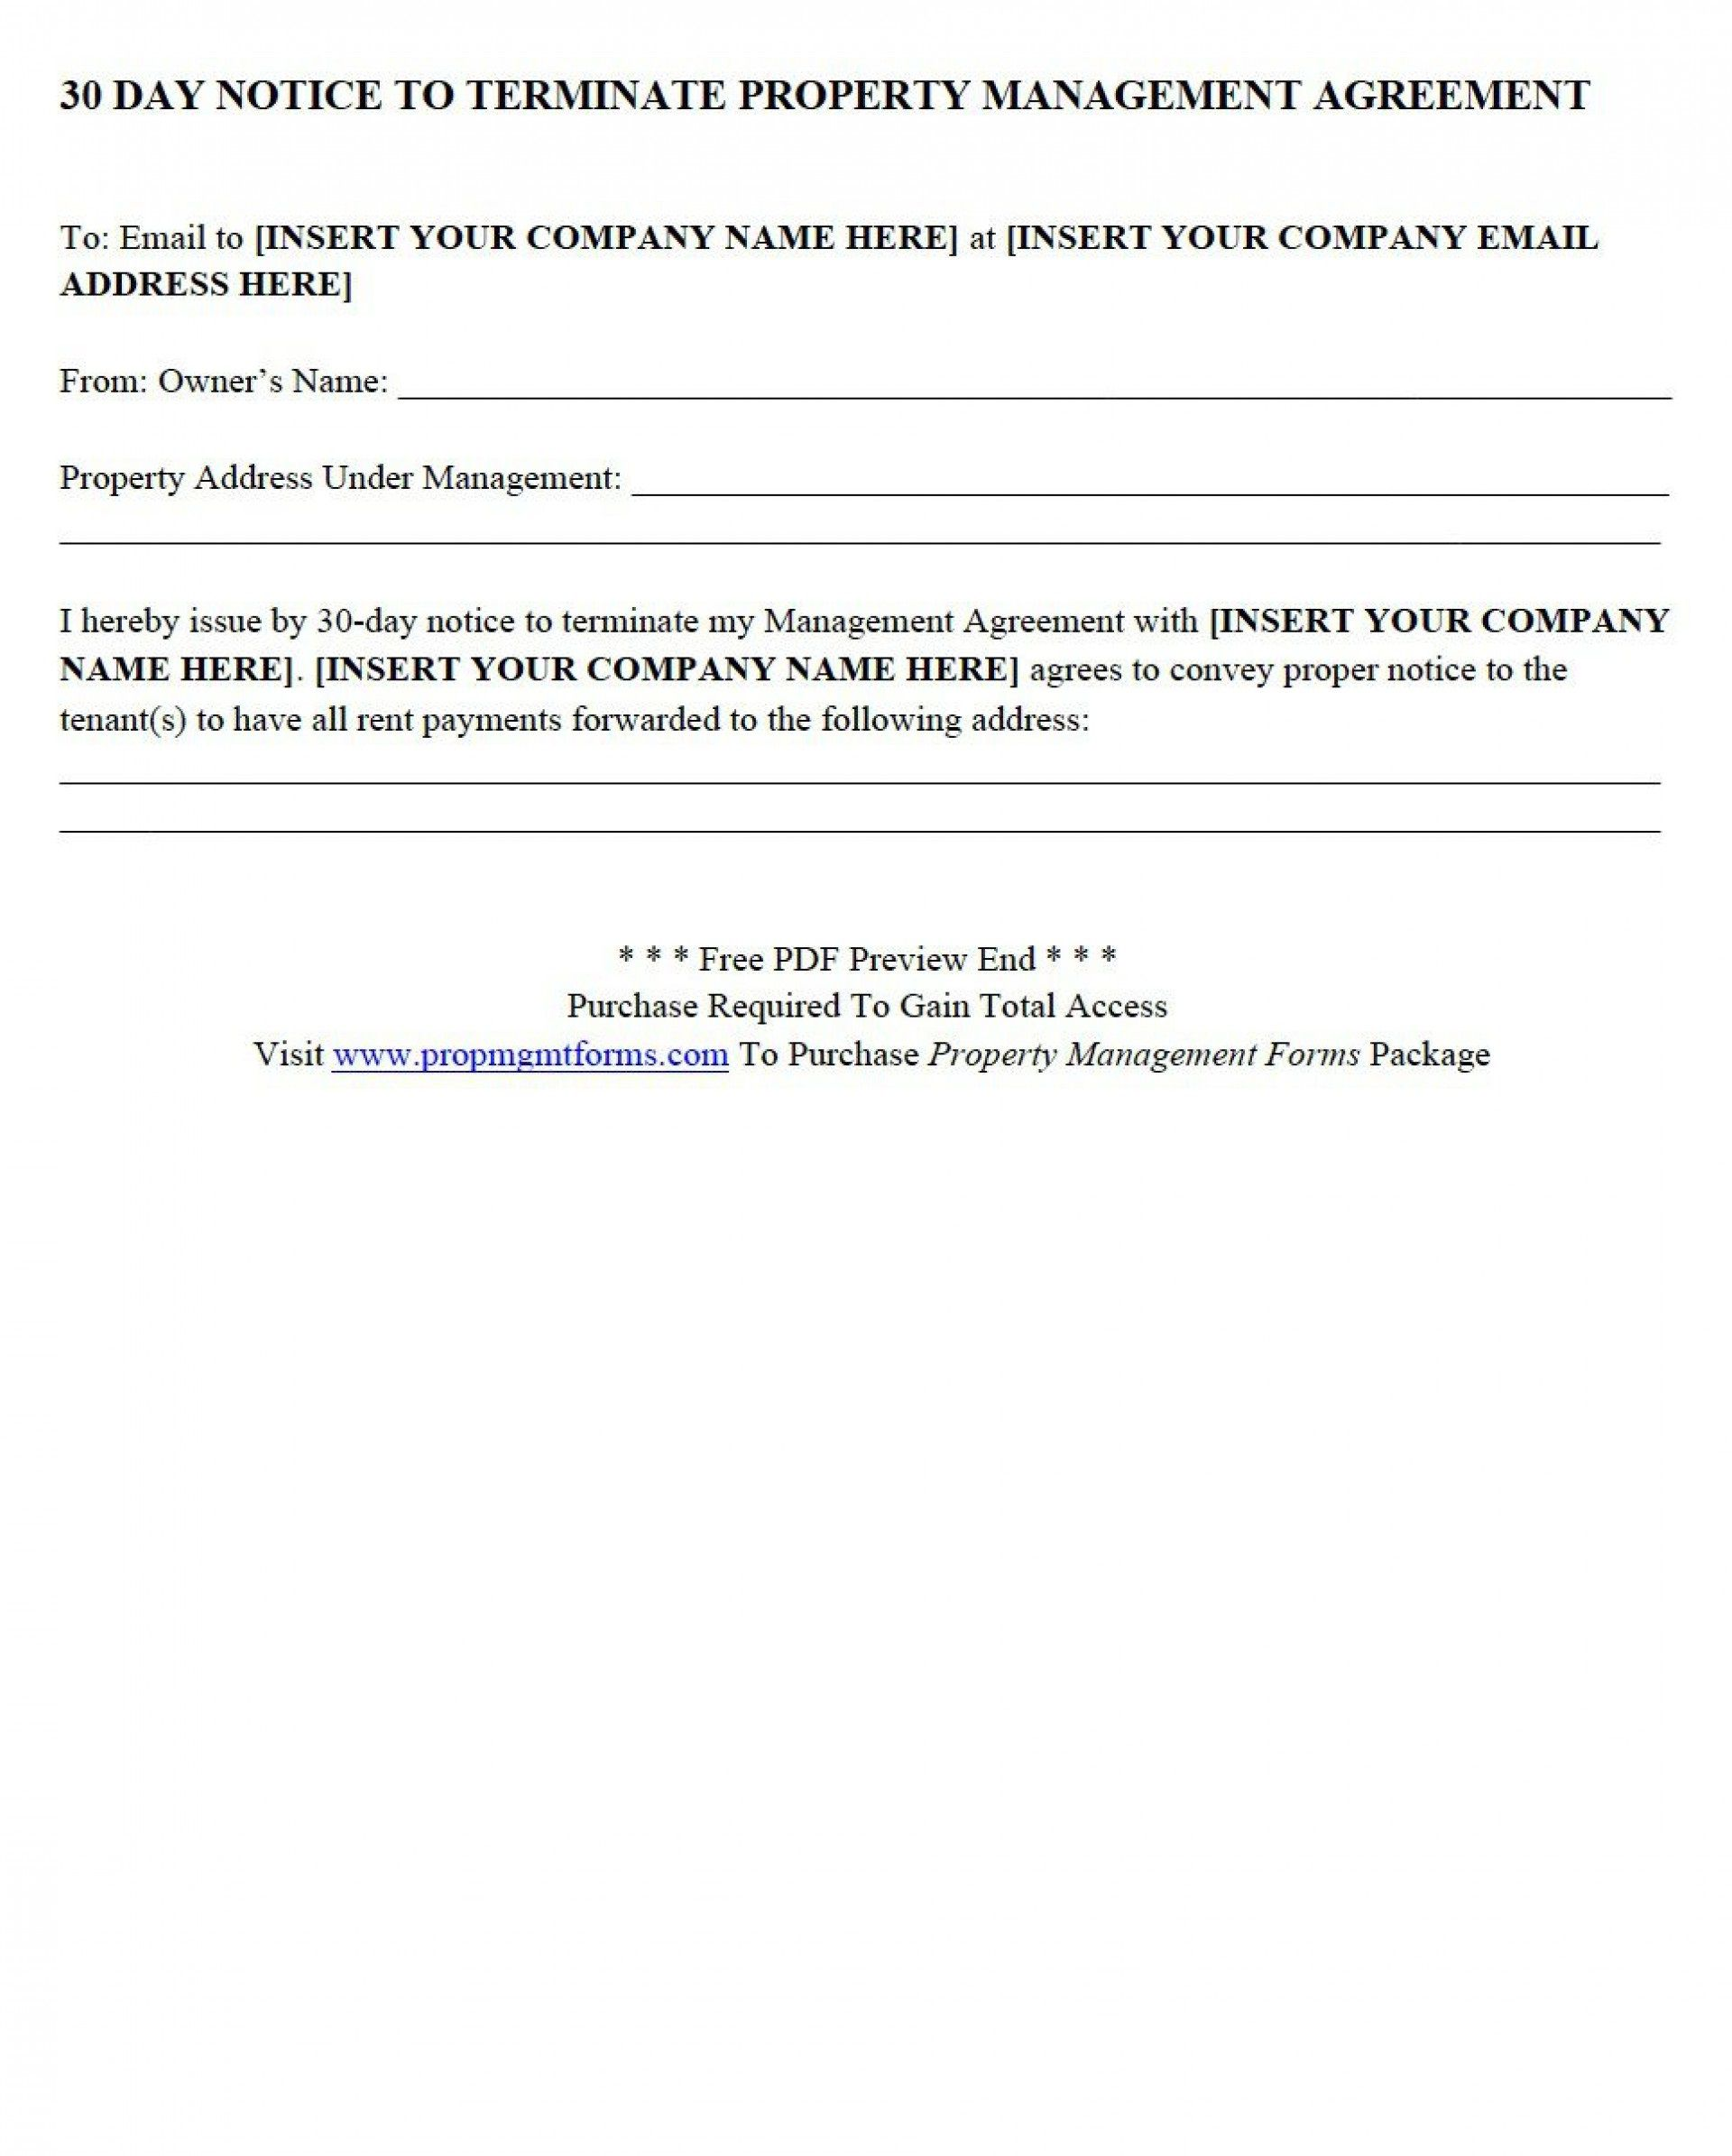 000 Stupendou Property Management Contract Template Ontario Image Full